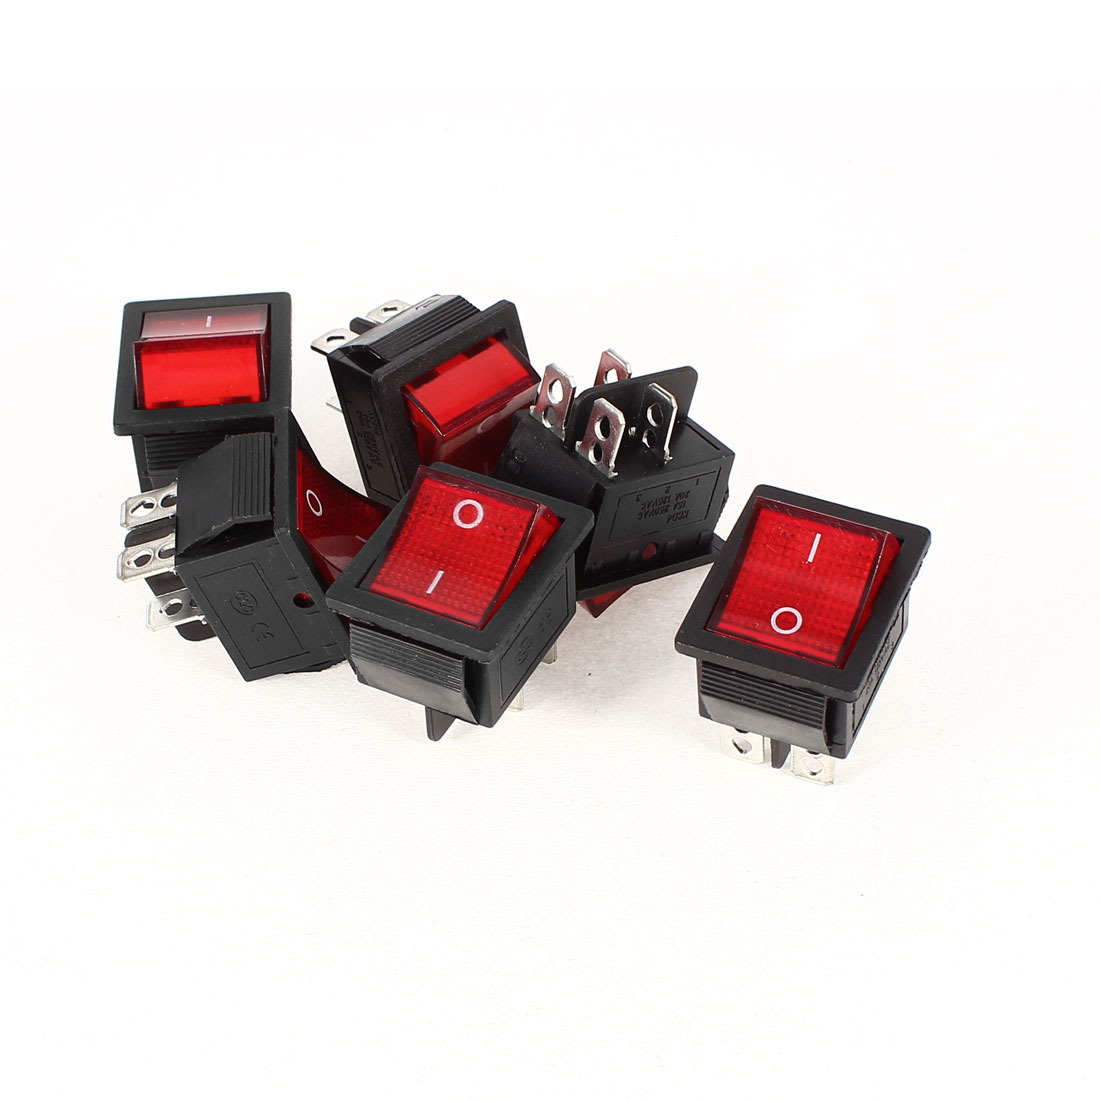 6 Pcs KCD4 DPST 4Pin On/Off Snap in Panel Mount Rocker Switch Red Light AC 15A/250V 20A/125V